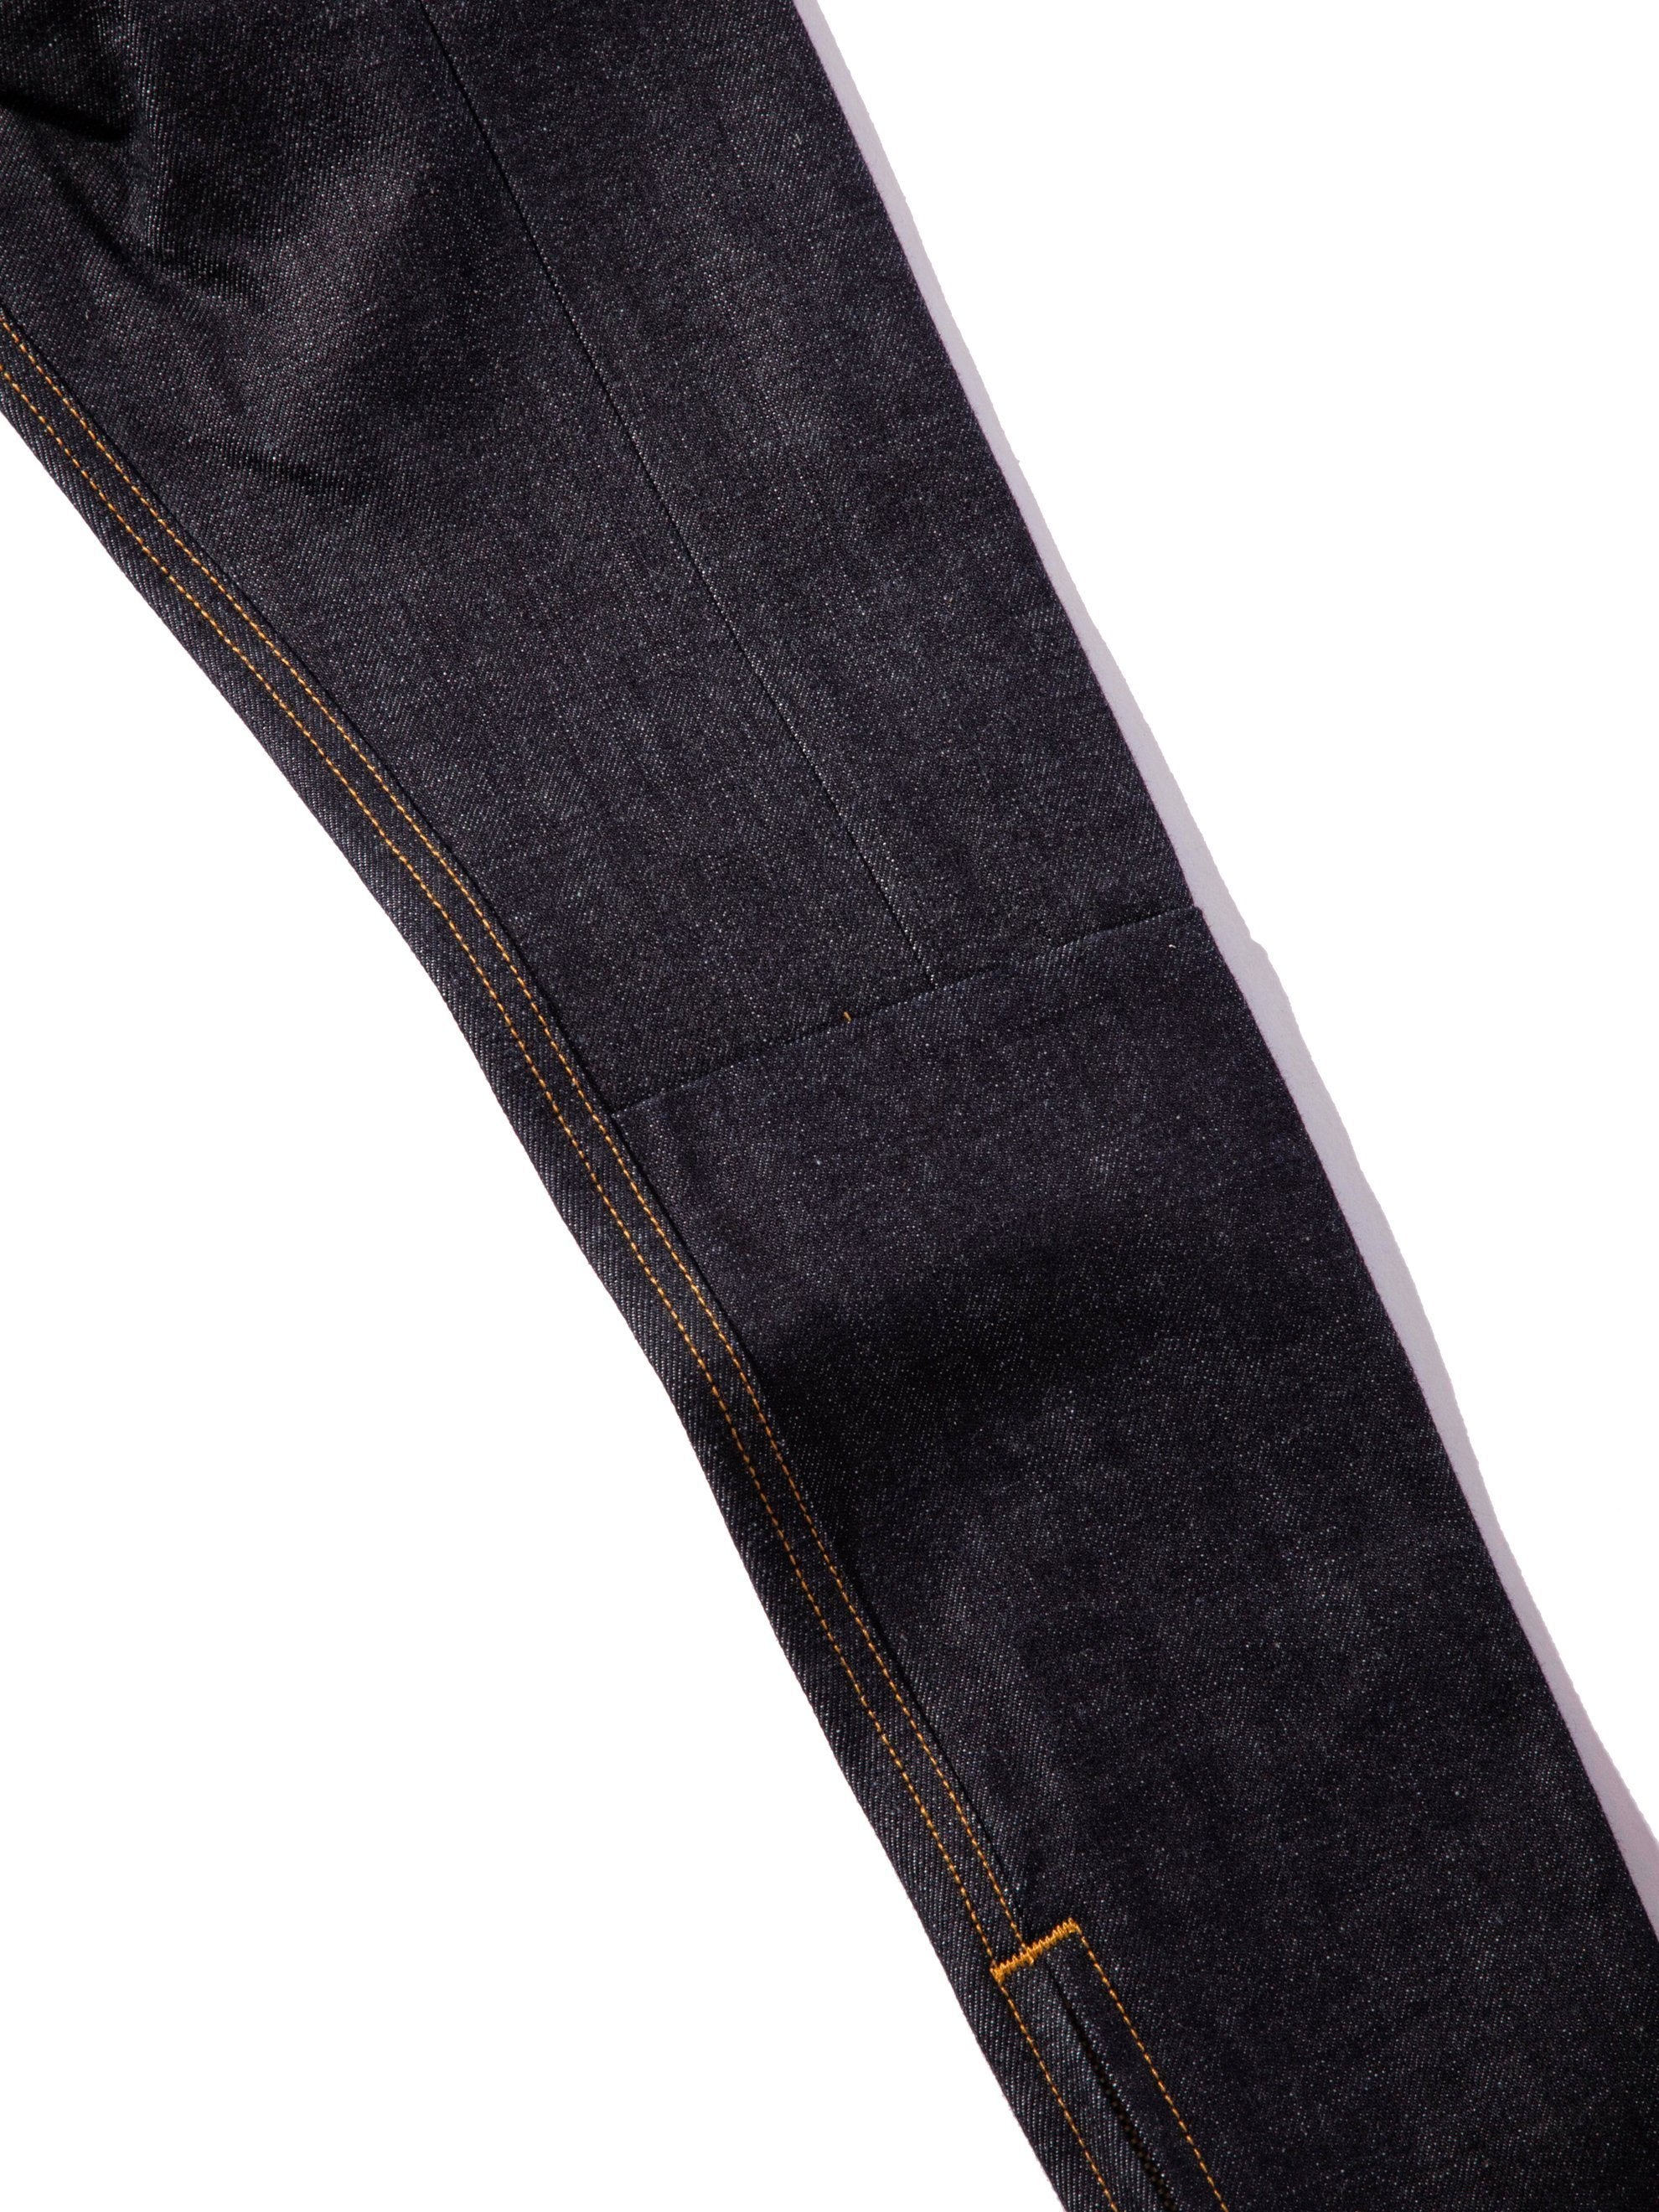 Raw Indigo Selvedge Paneled Denim Jean 8